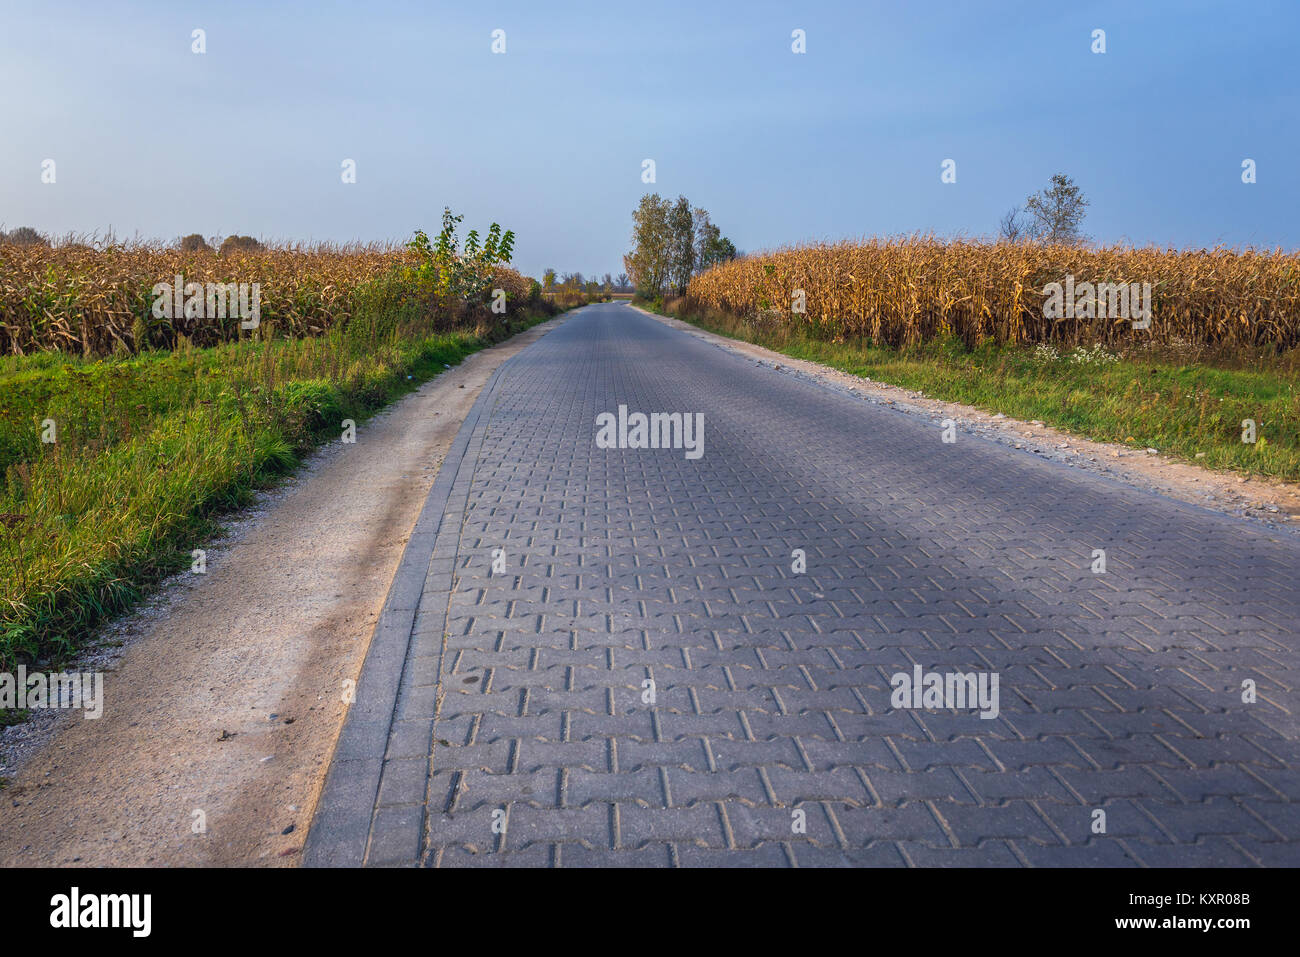 Modern paving stones road in Brochow village, Sochaczew County in Masovian Voivodeship of Poland - Stock Image